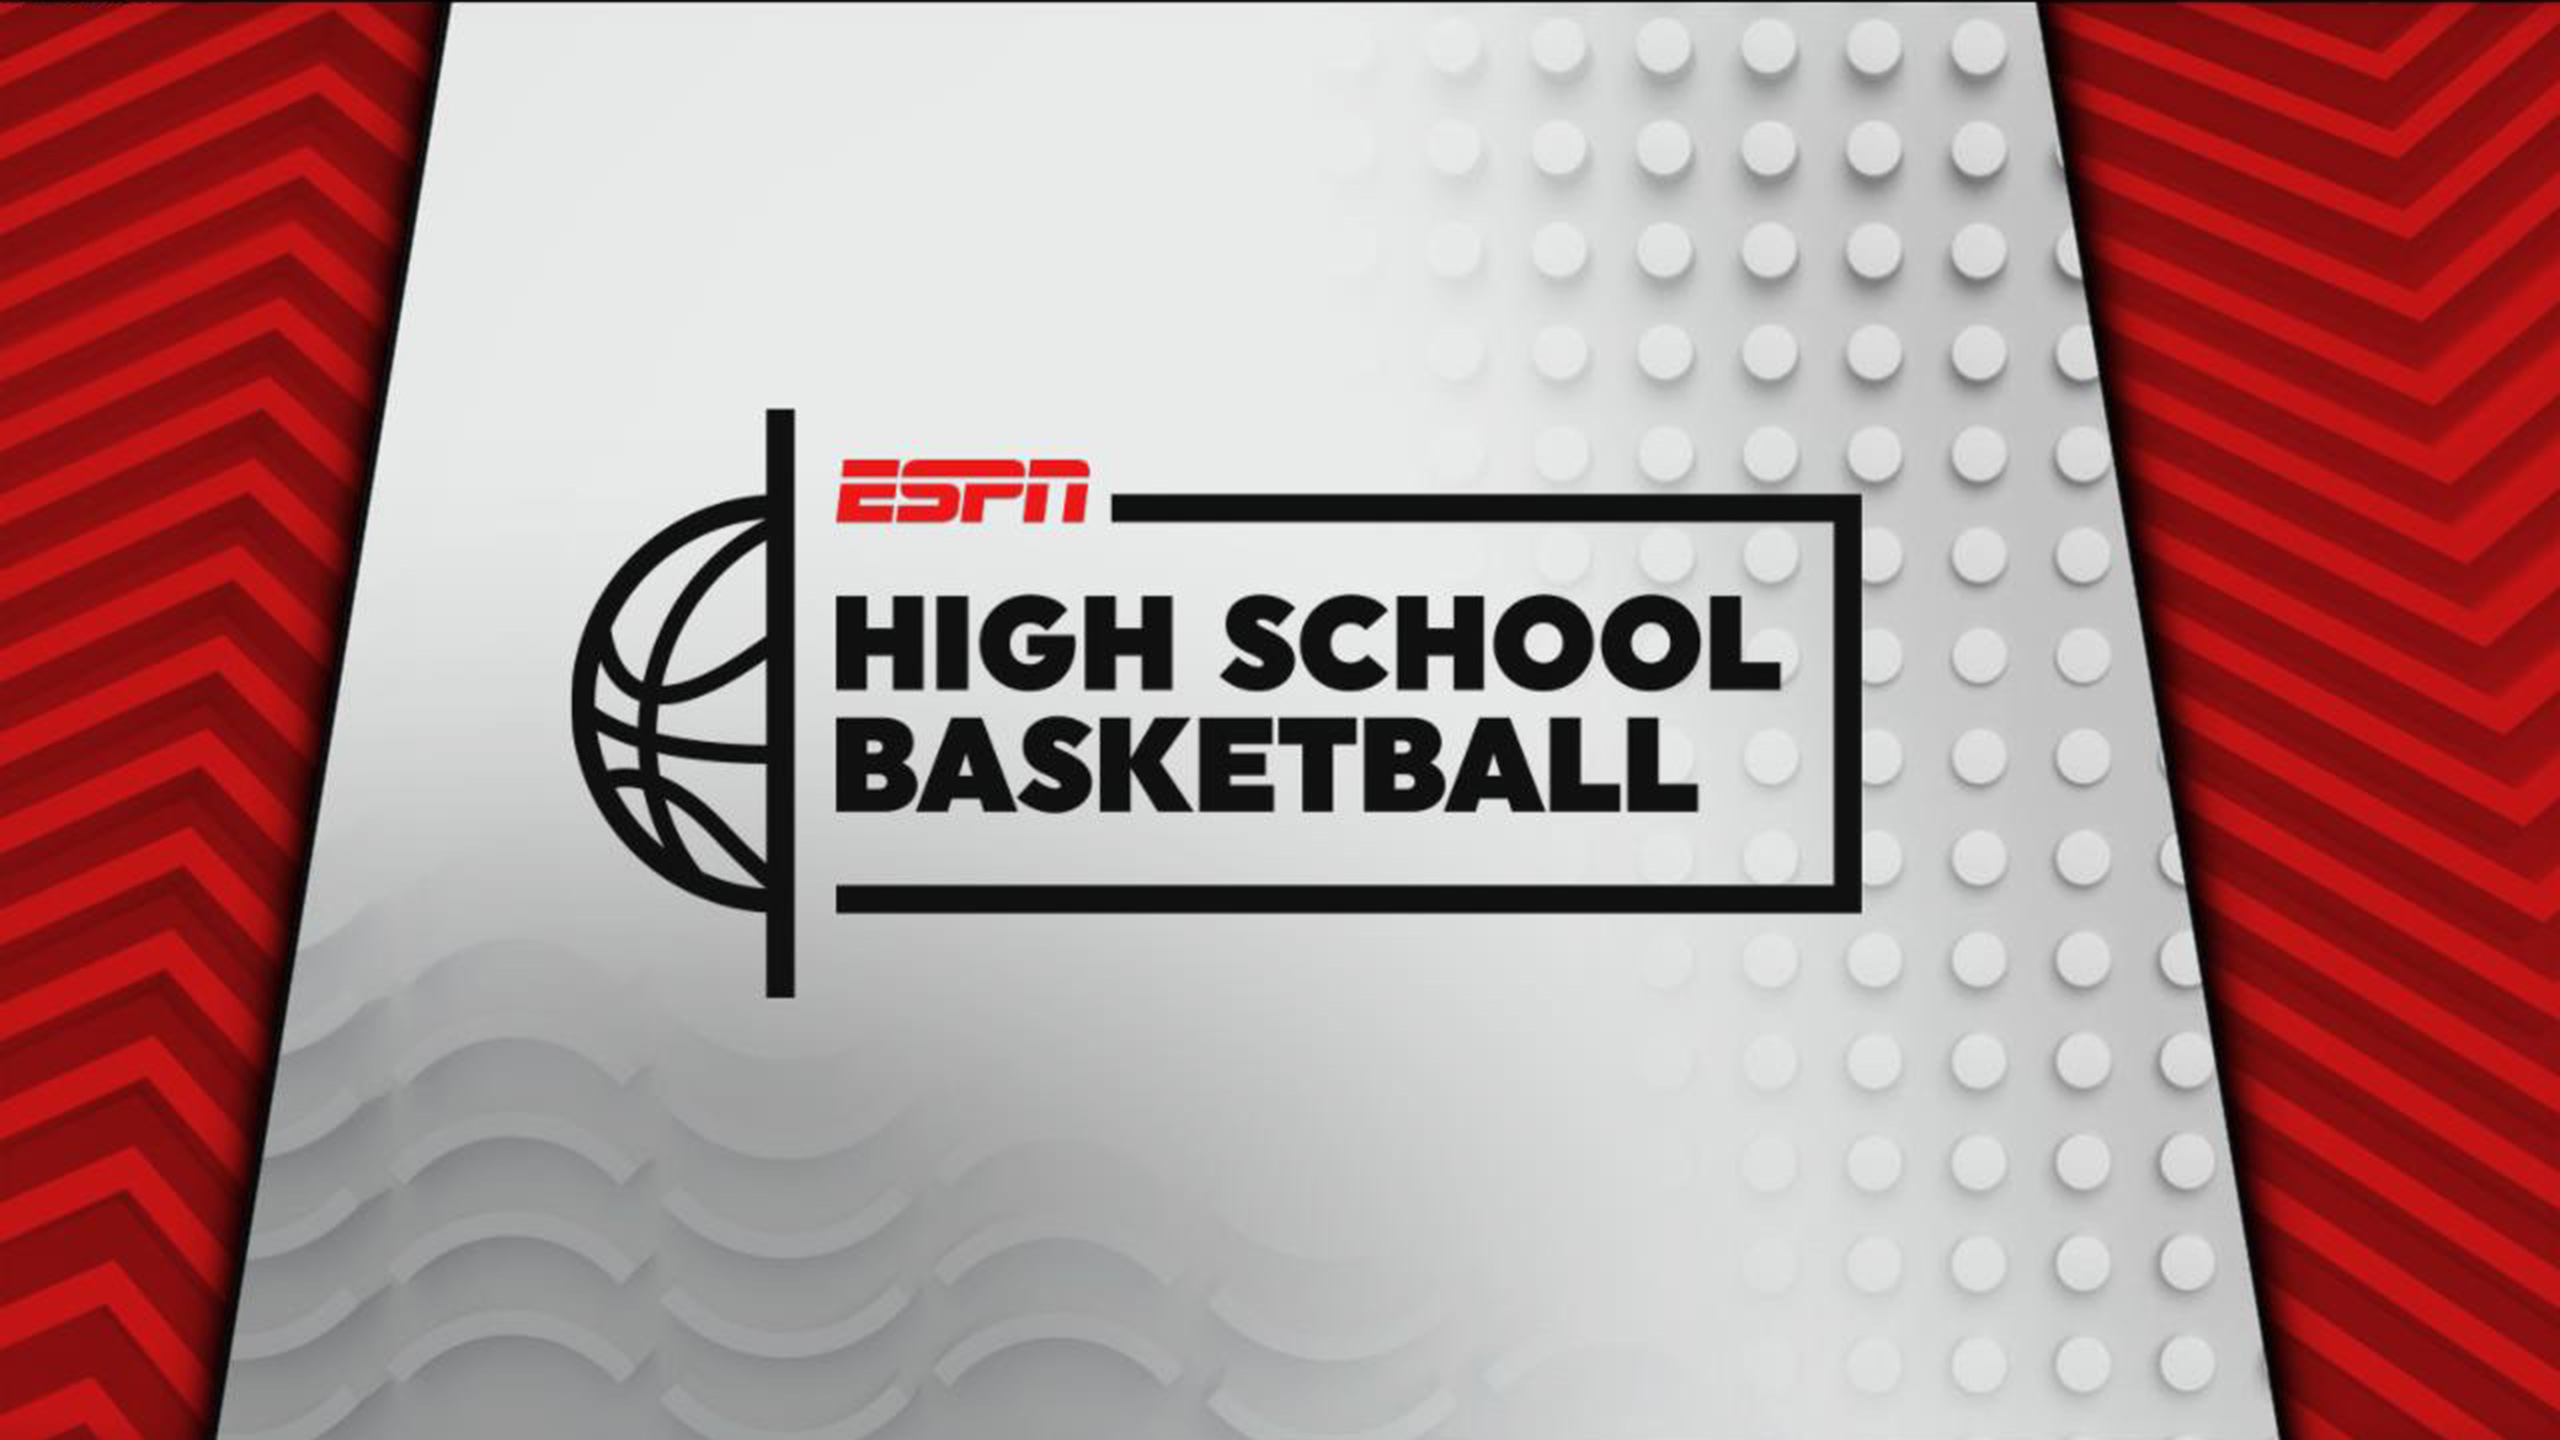 Federal Way (WA) vs. Ranney (NJ) (Boys' HS Basketball) (re-air)